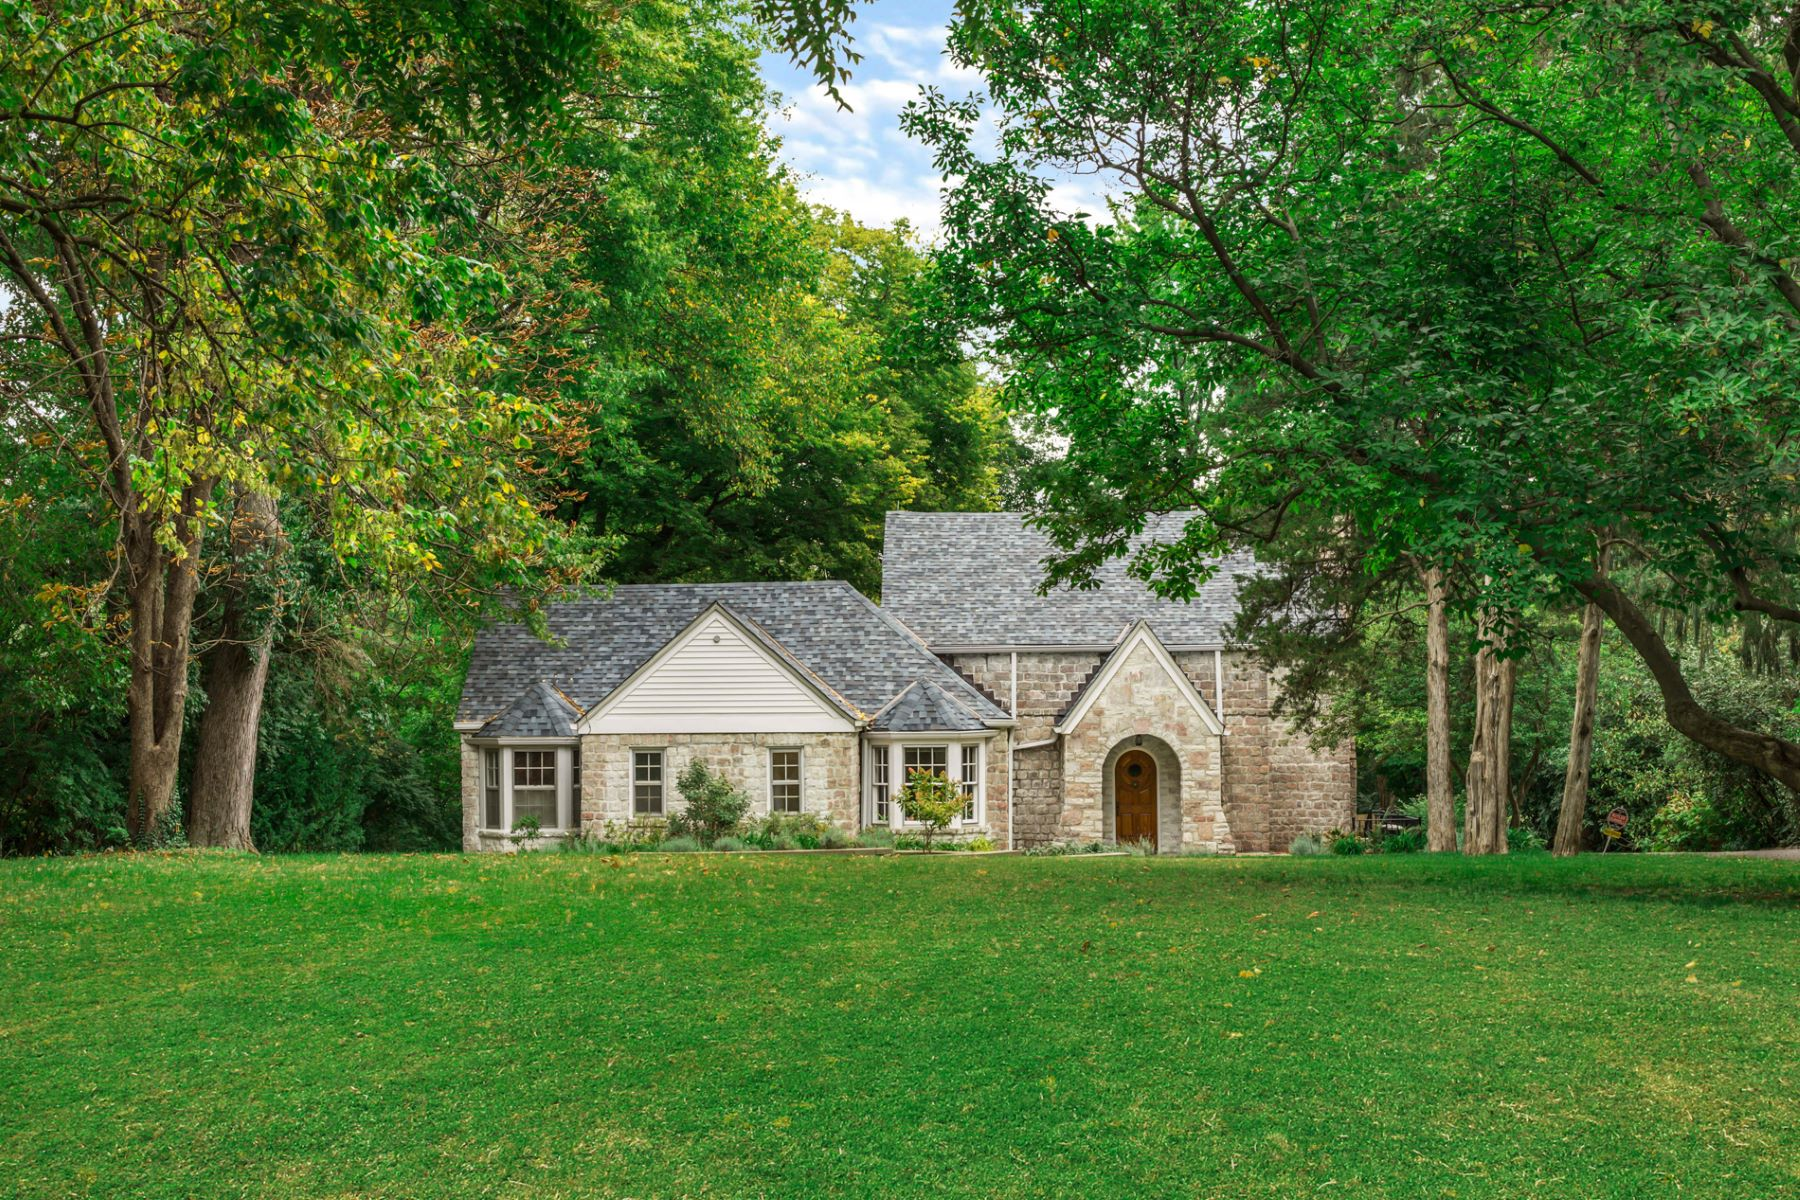 Property for Sale at Beautiful Stone House in Ladue 9117 Clayton Road Ladue, Missouri 63124 United States